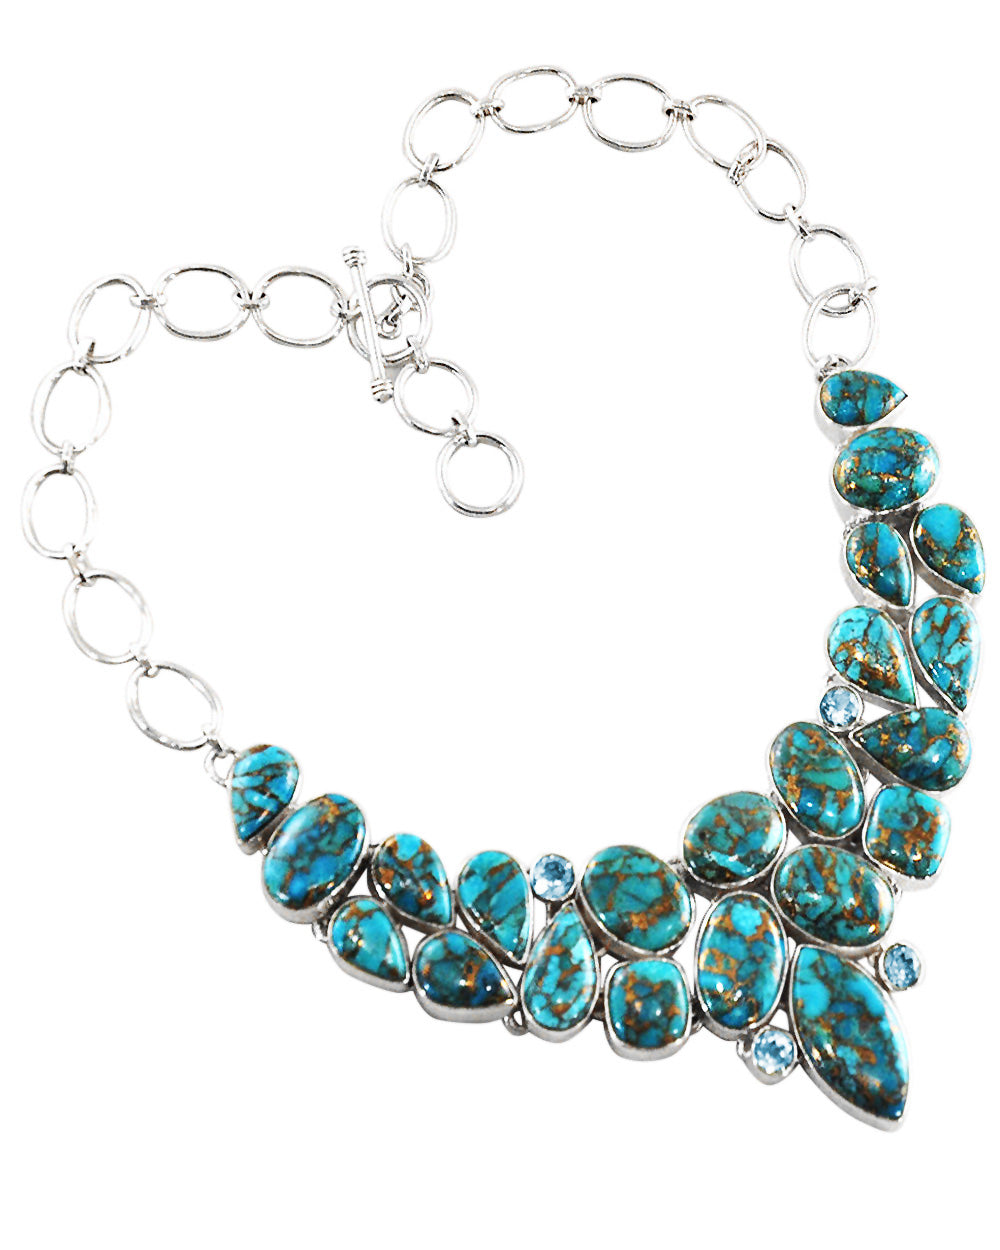 Blue Copper Turquoise Statement Necklace in Sterling Silver